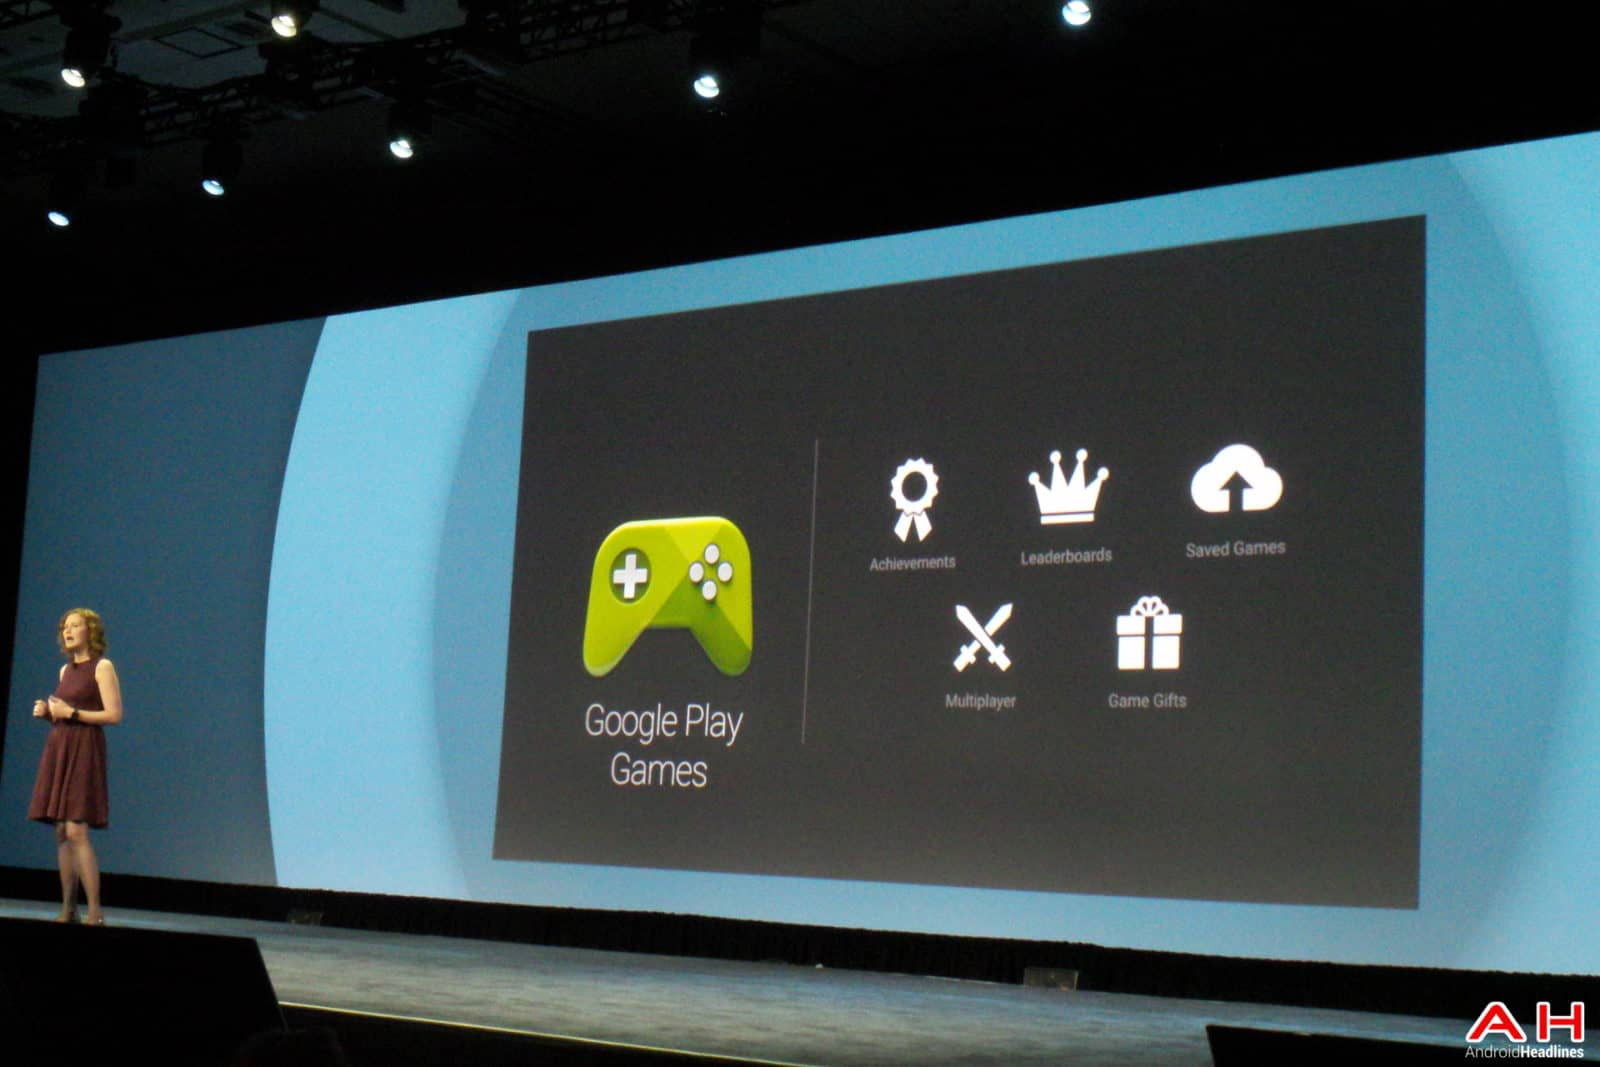 AH Google IO 2014  (2 of 4) Google Play Games 2